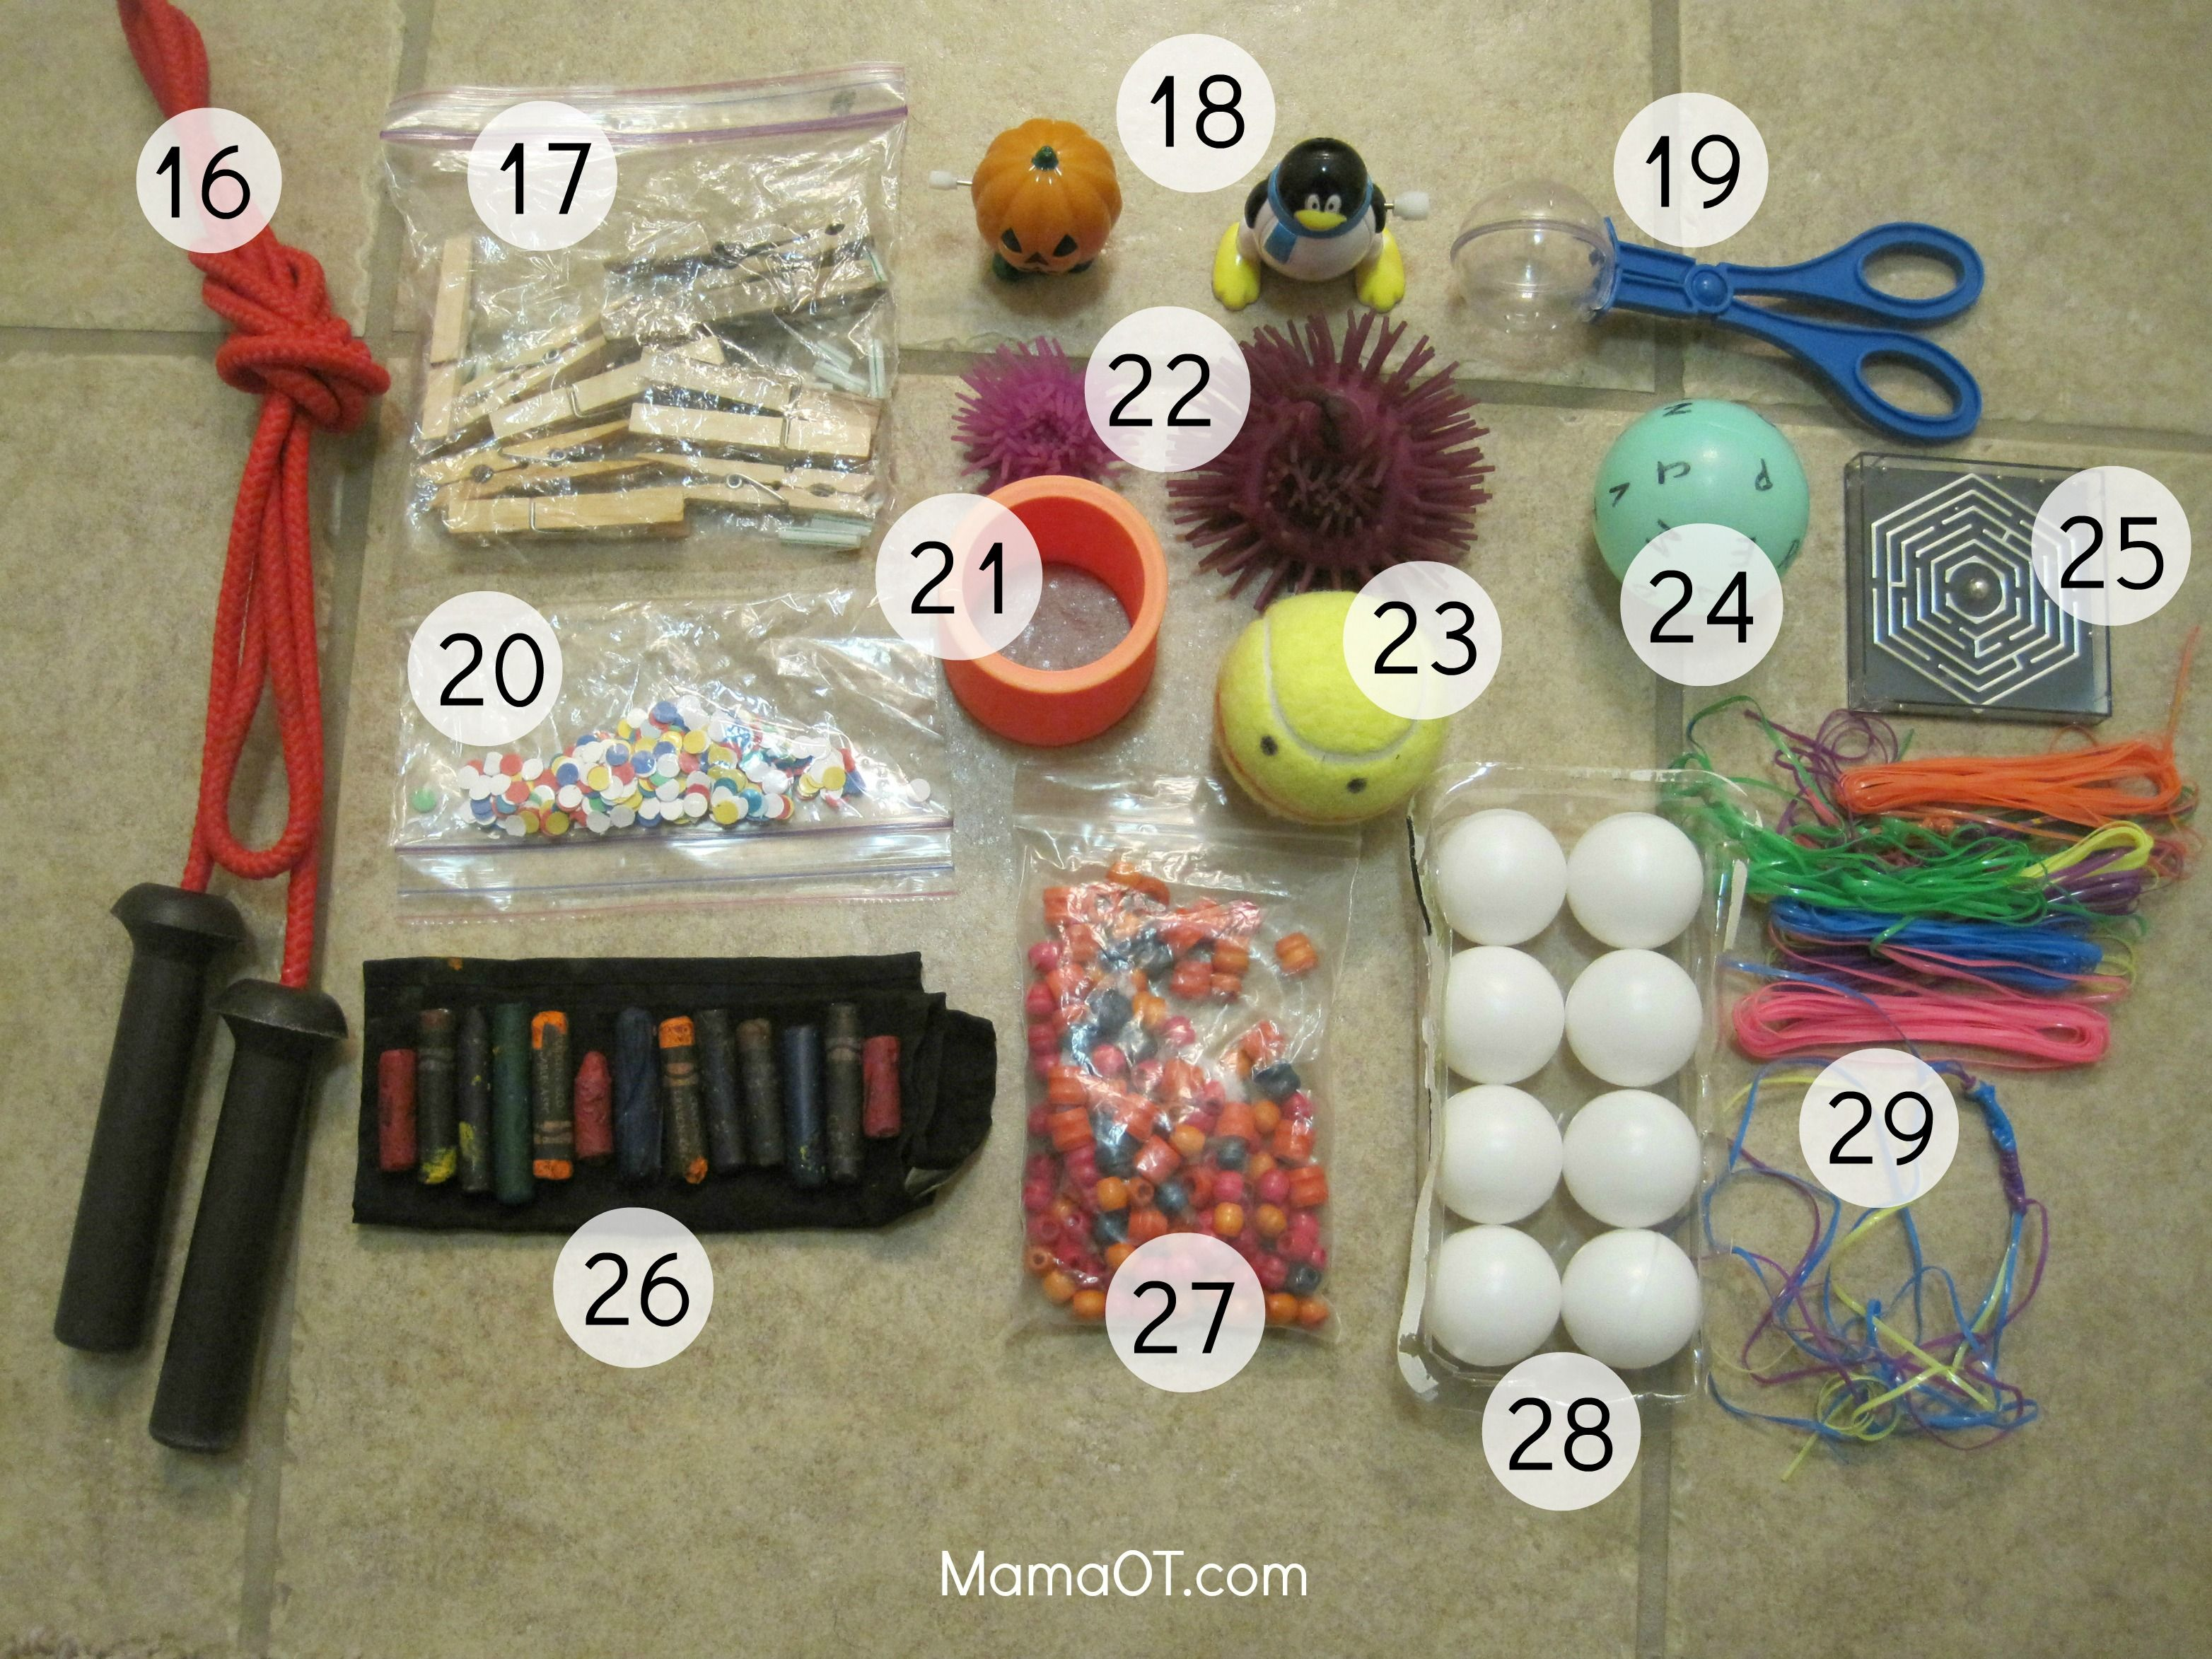 Bright idea 4 physical therapy - What S In My Therapy Box 60 Supplies For School Based Ots